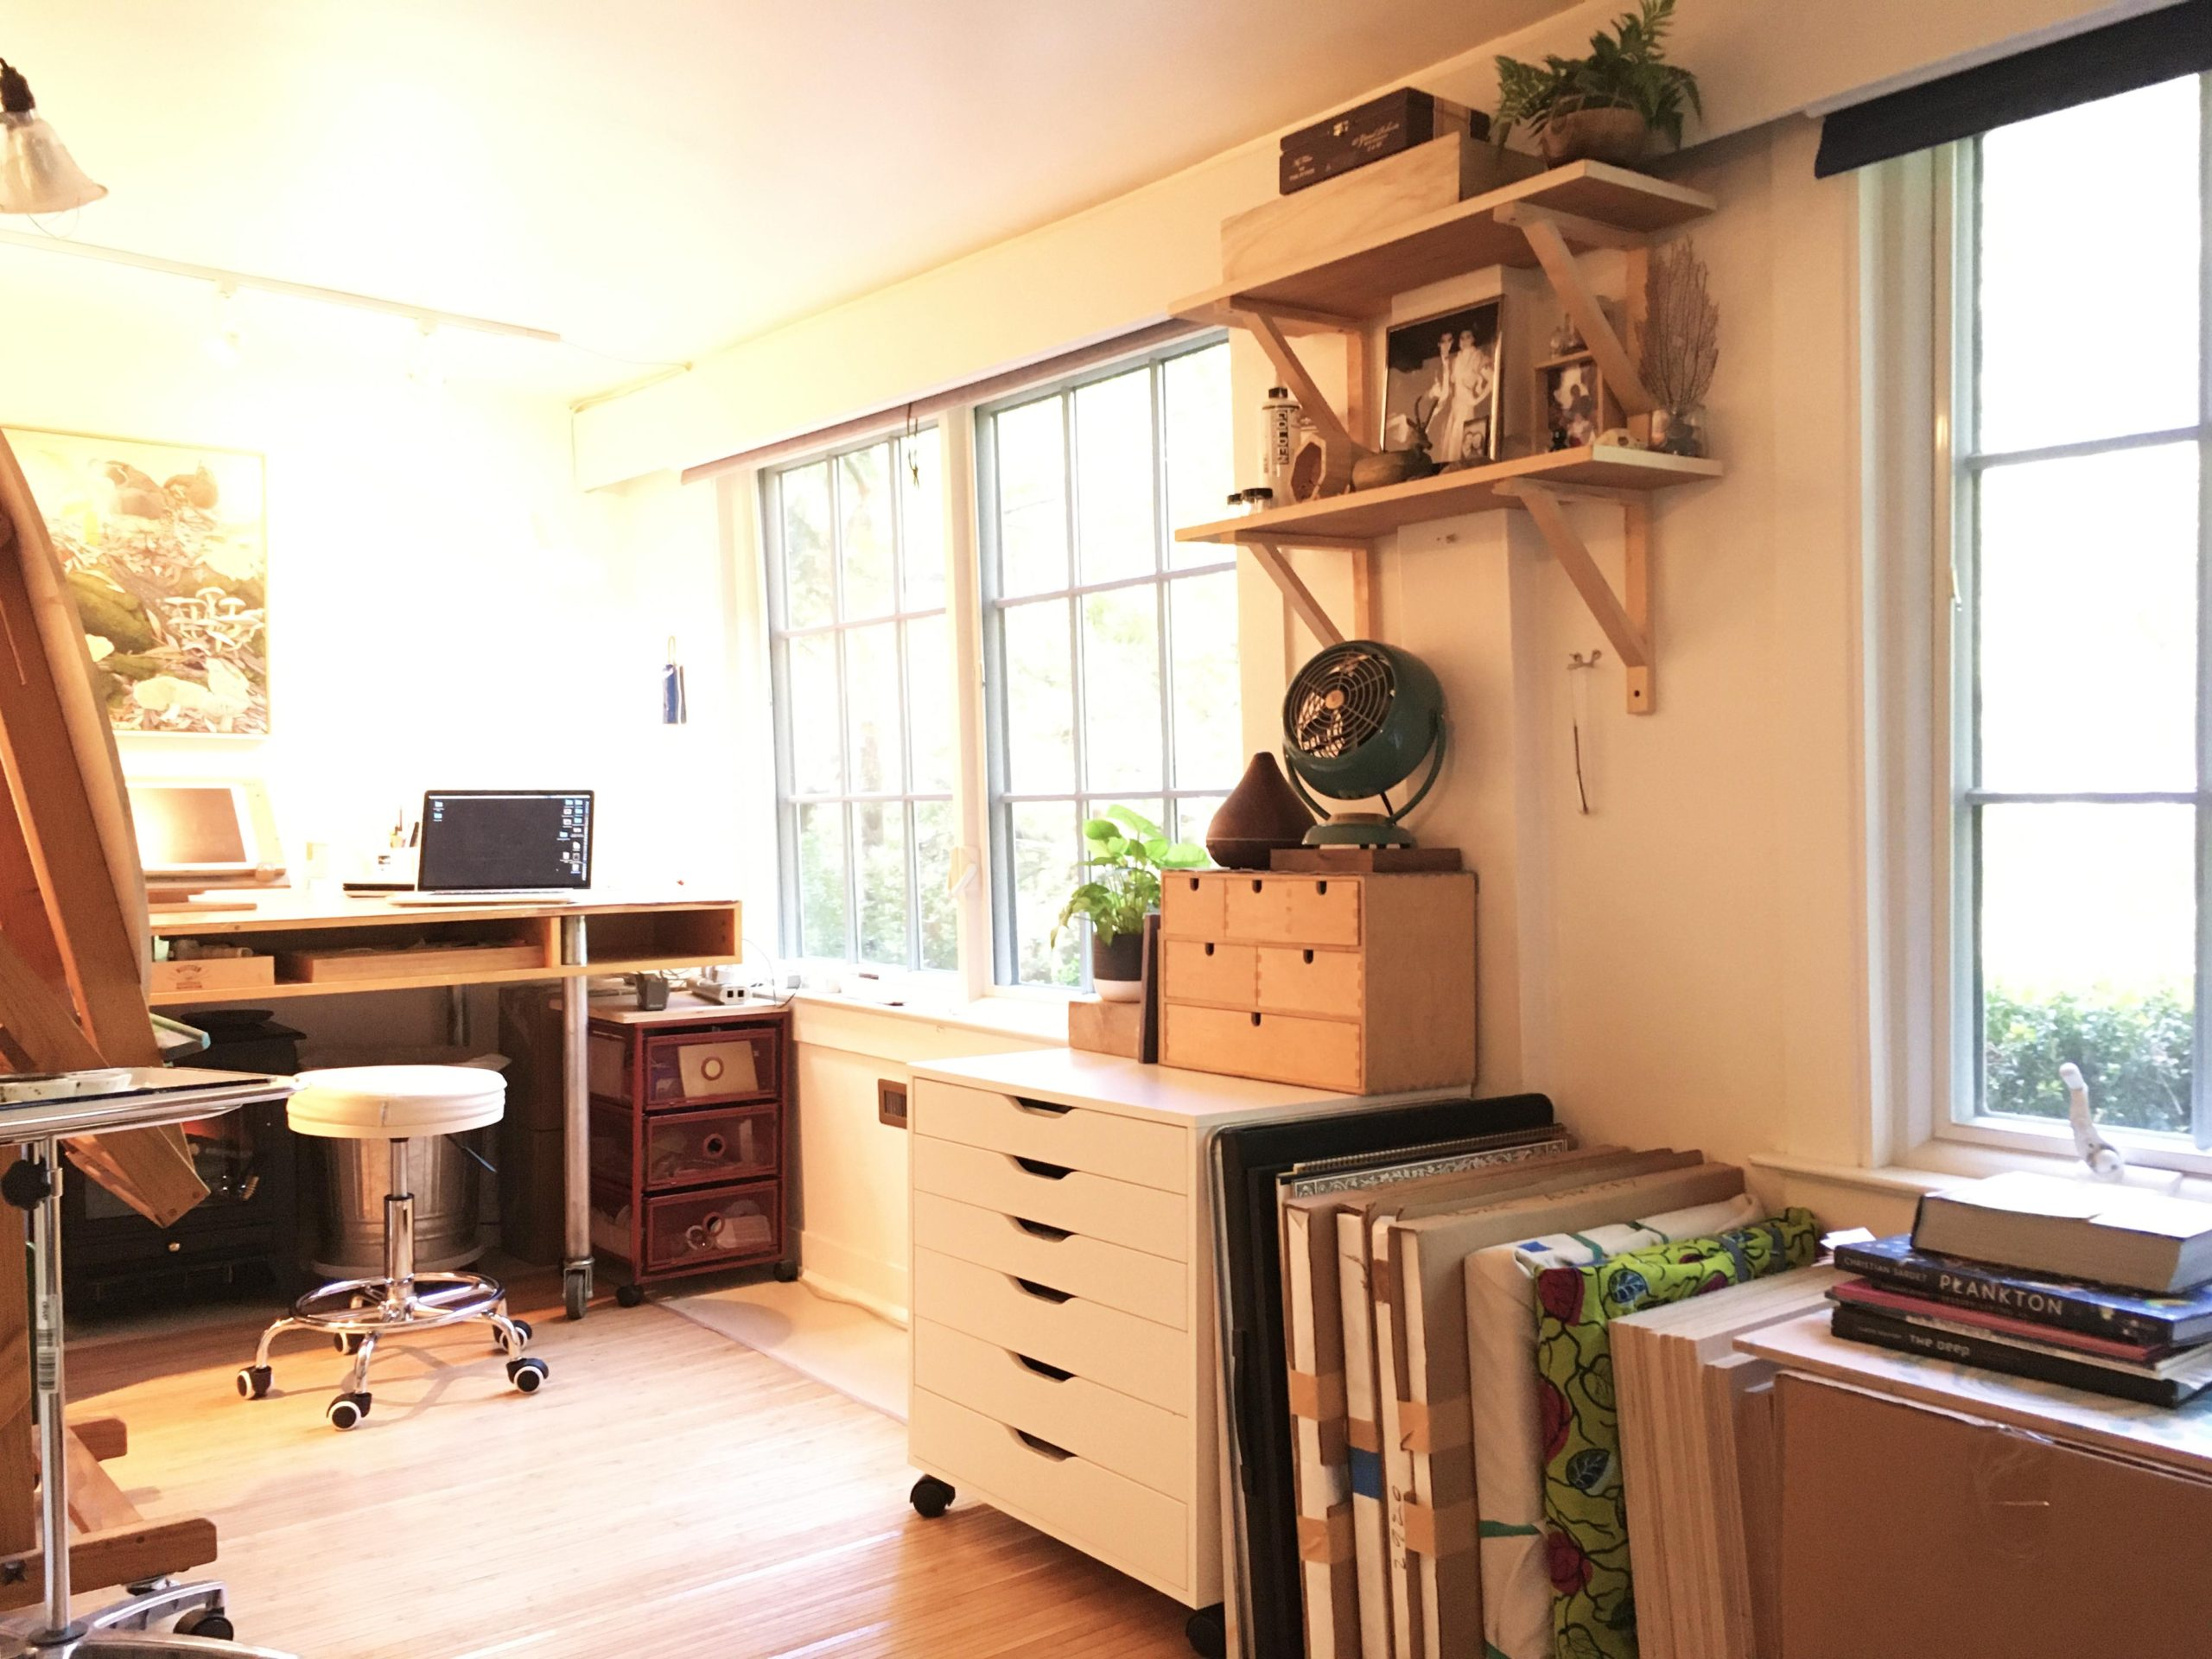 Tiffany's home studio